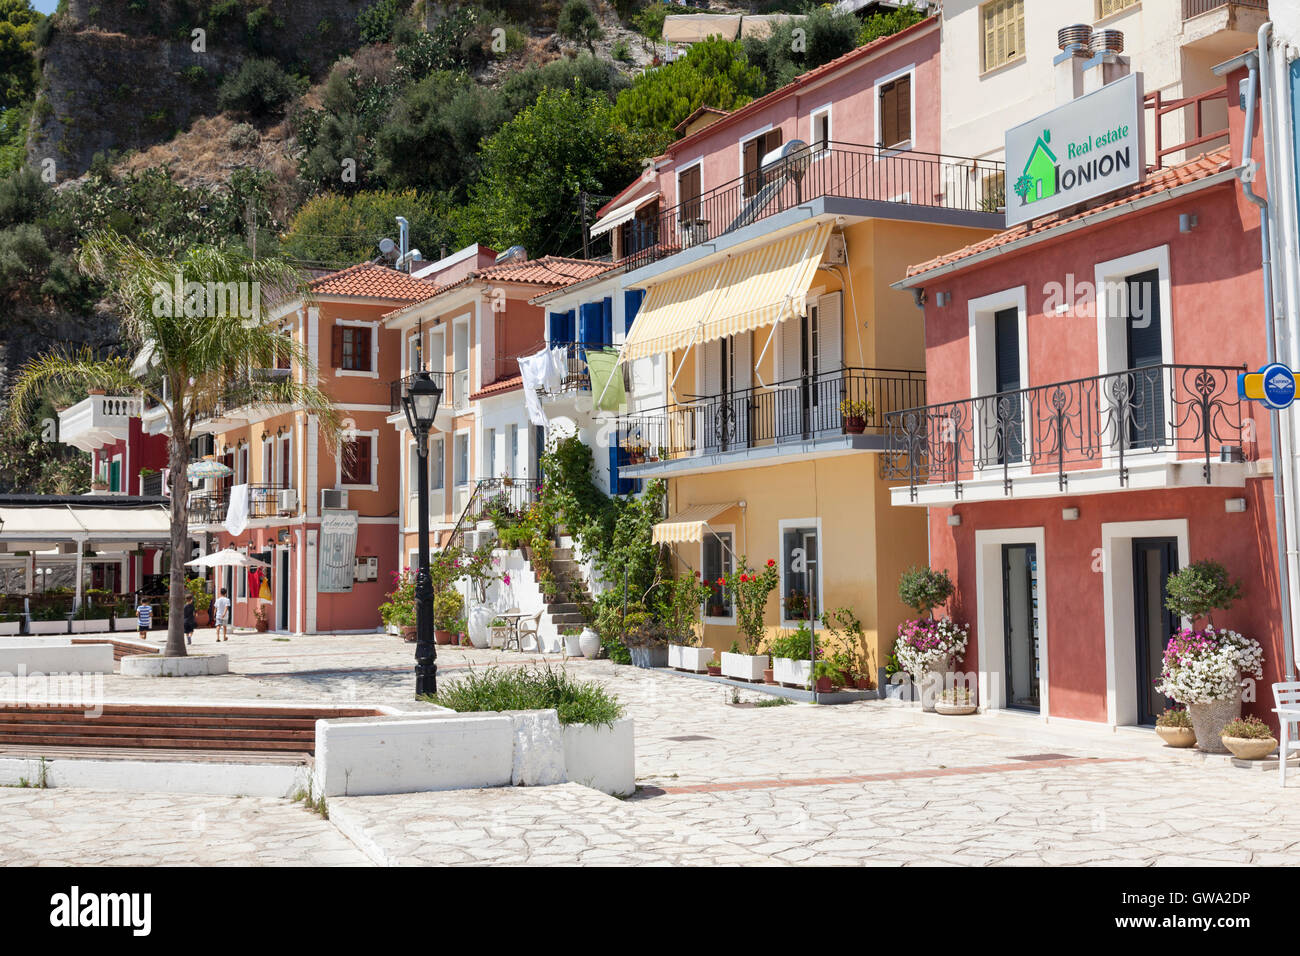 Close up of tradional picturesque colourful houses in Parga, Greece - Stock Image